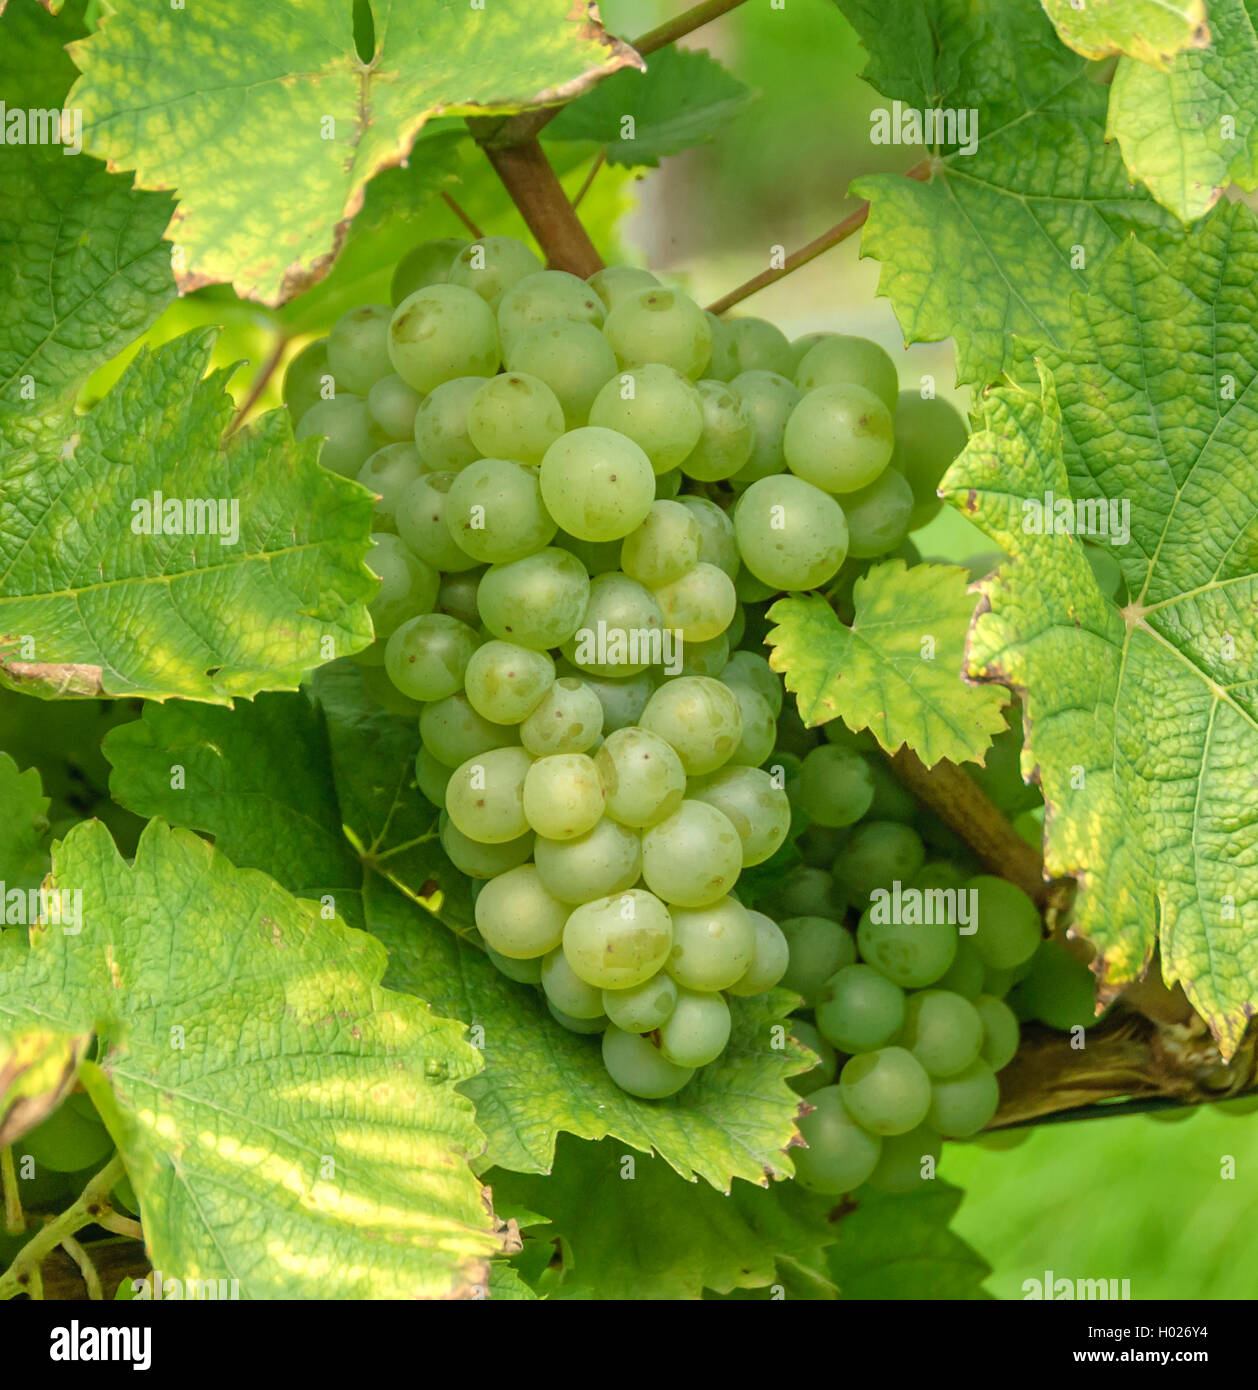 Echter Wein Weinrebe Stock Photos And Weinrebe Stock Images Alamy